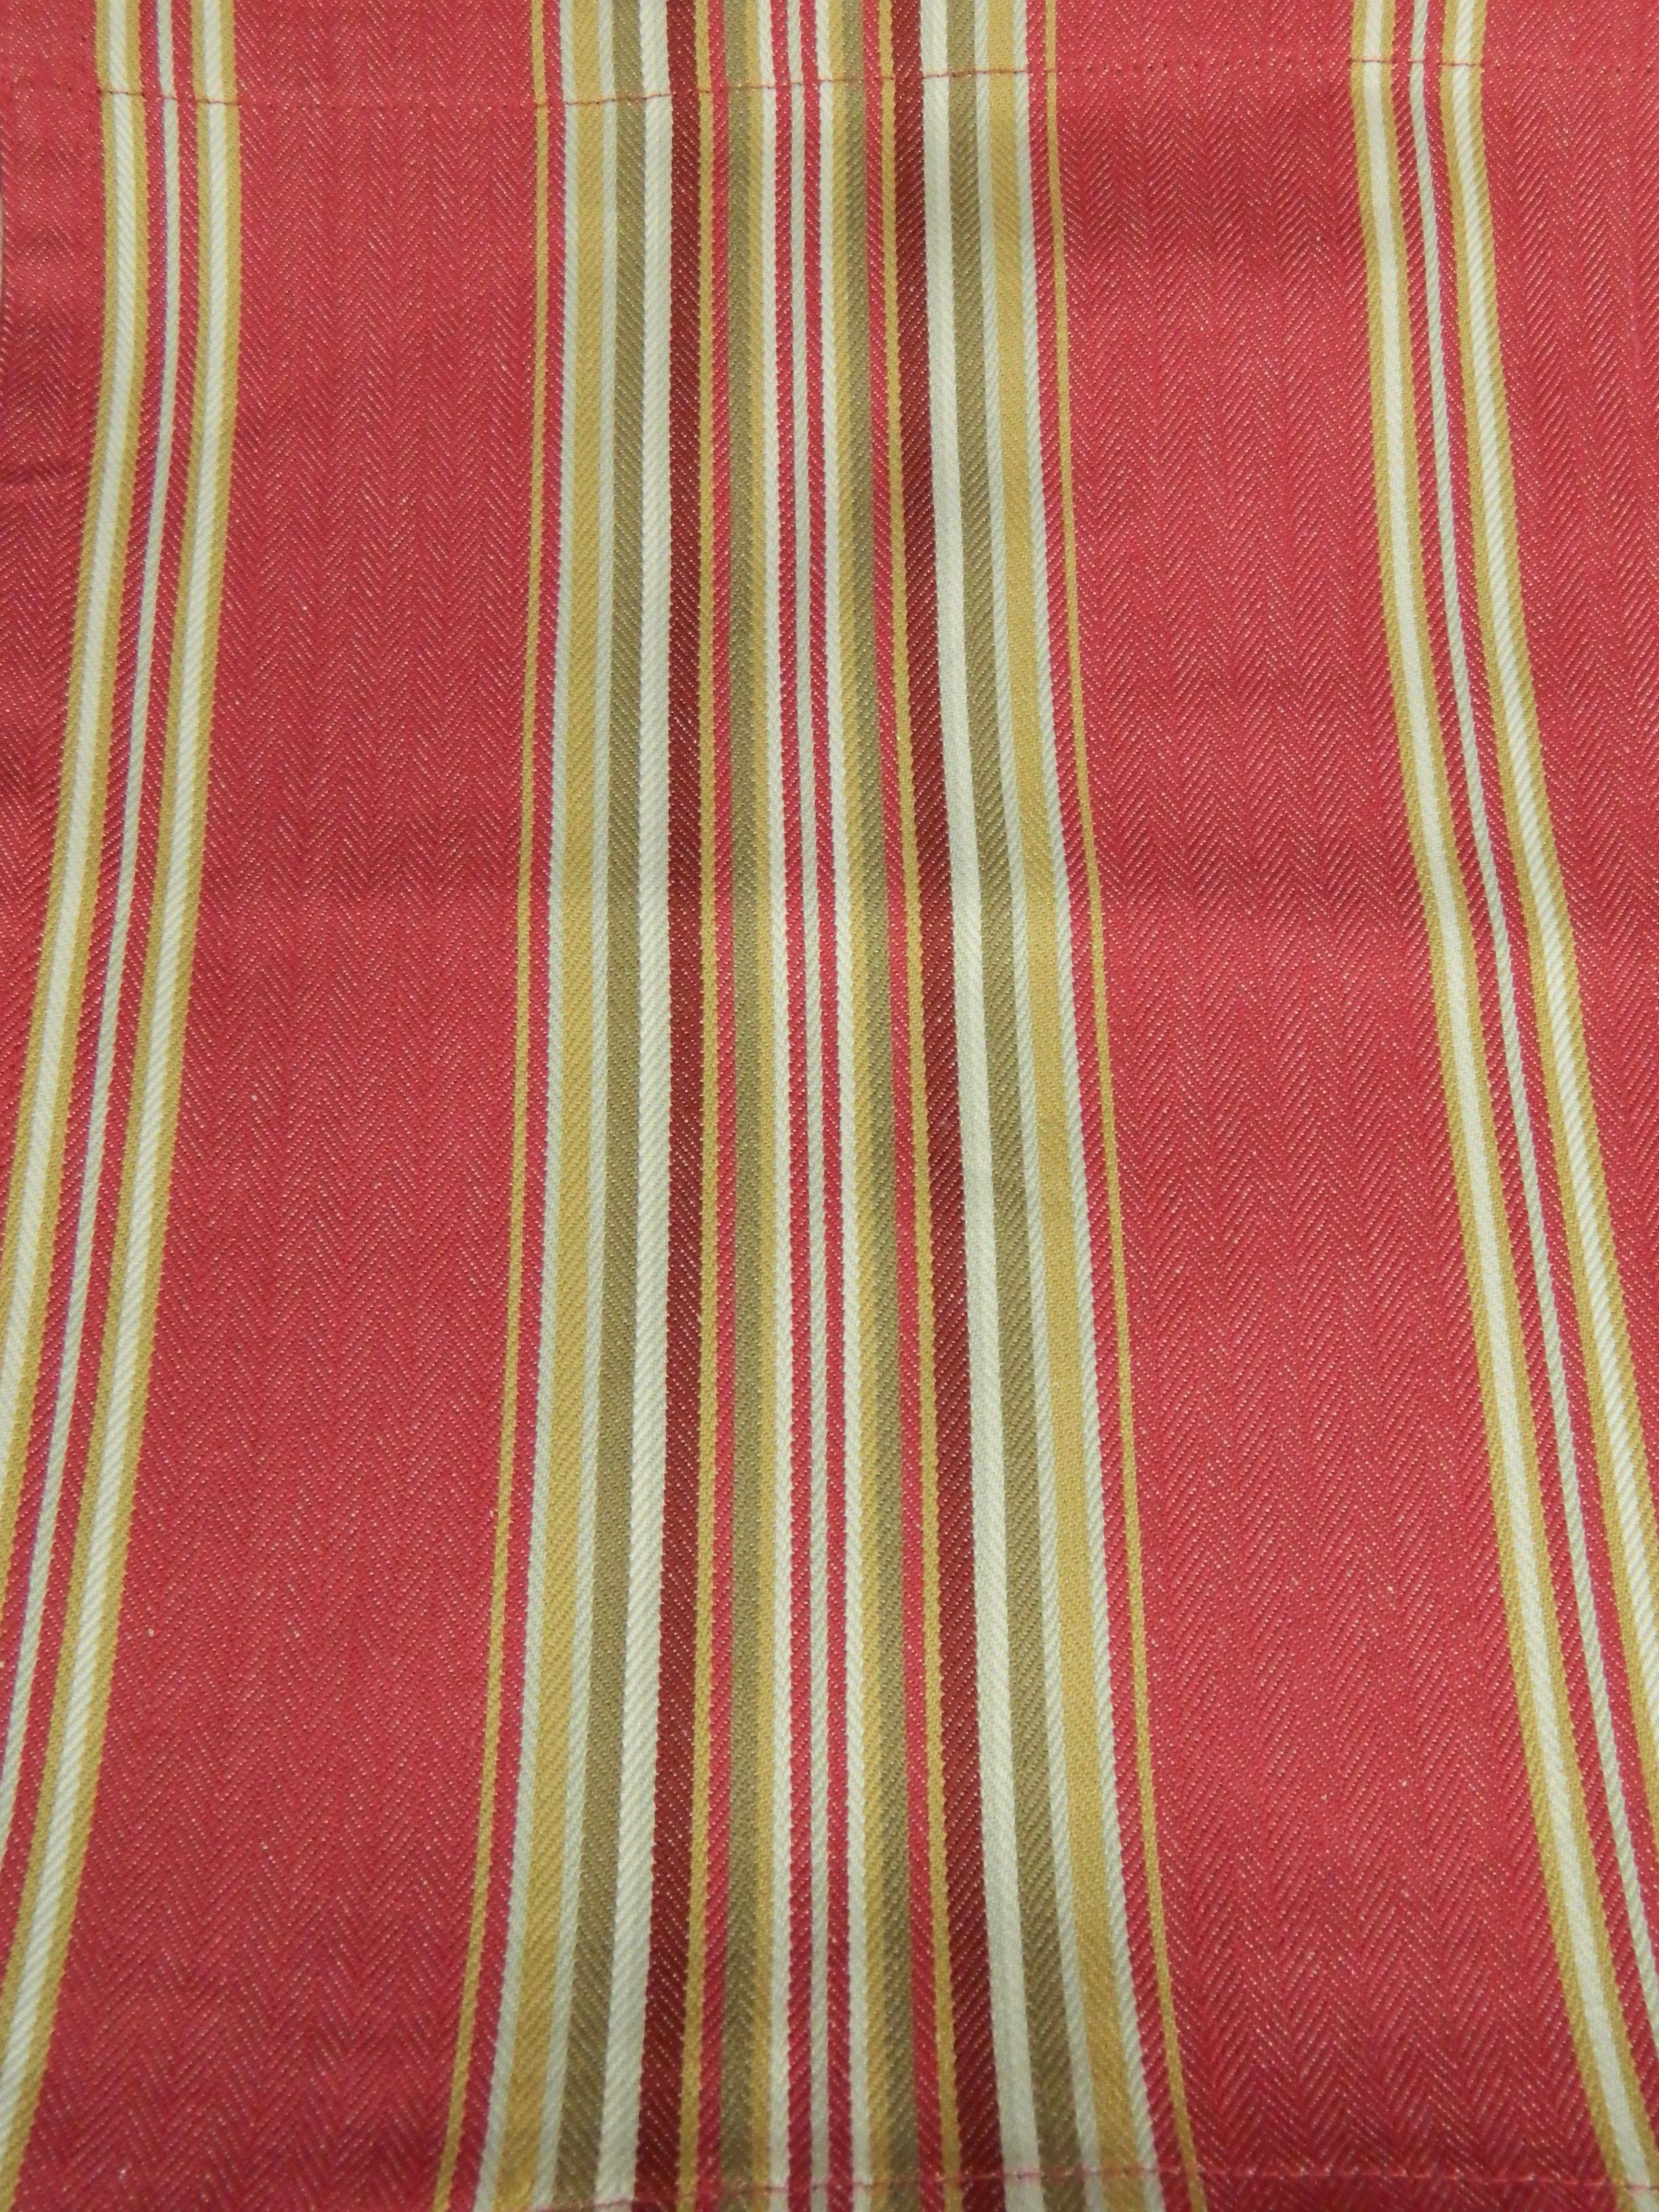 2 Pottery Barn Hudson French Red Stripe 44 X 13 Cafe Tie